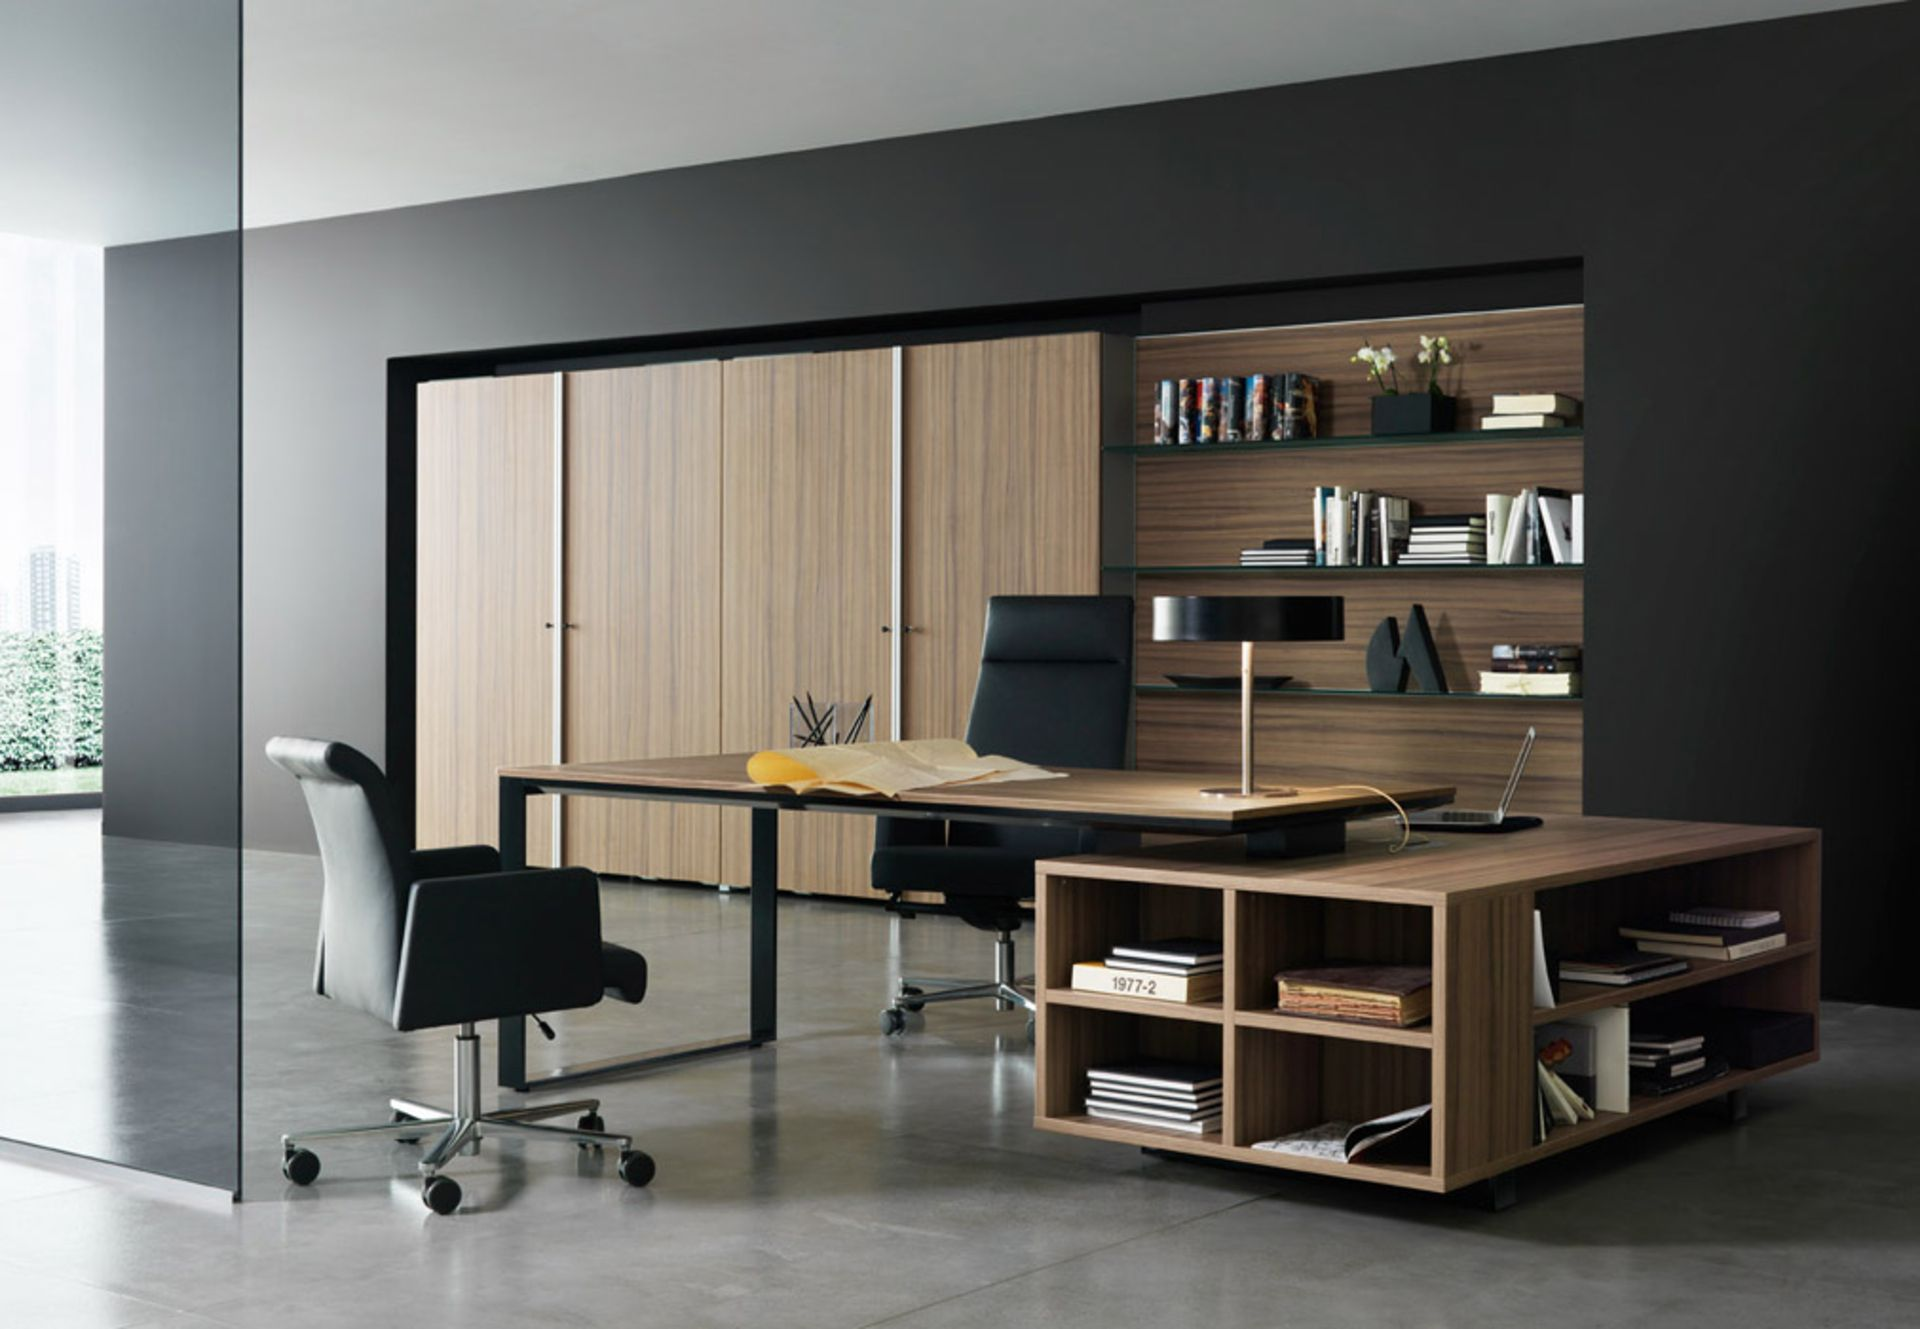 Pleasant Office Cabin Ideas By Elevation We Are Interior Designers In Largest Home Design Picture Inspirations Pitcheantrous